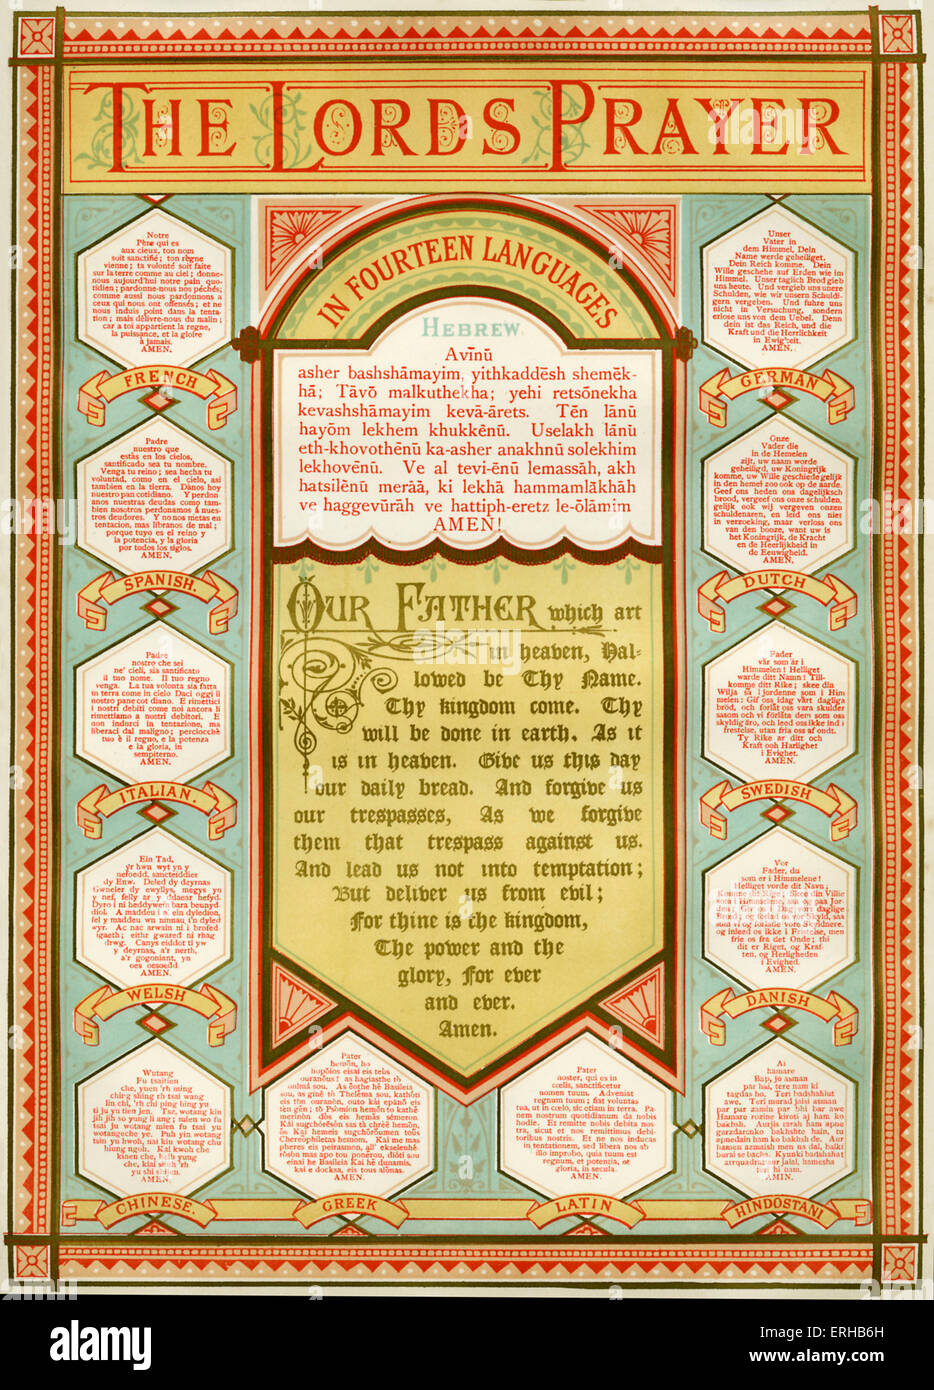 Illustrated version of The Lord's Prayer in fourteen languages including Hebrew, French, Spanish, Italian, Welsh, - Stock Image